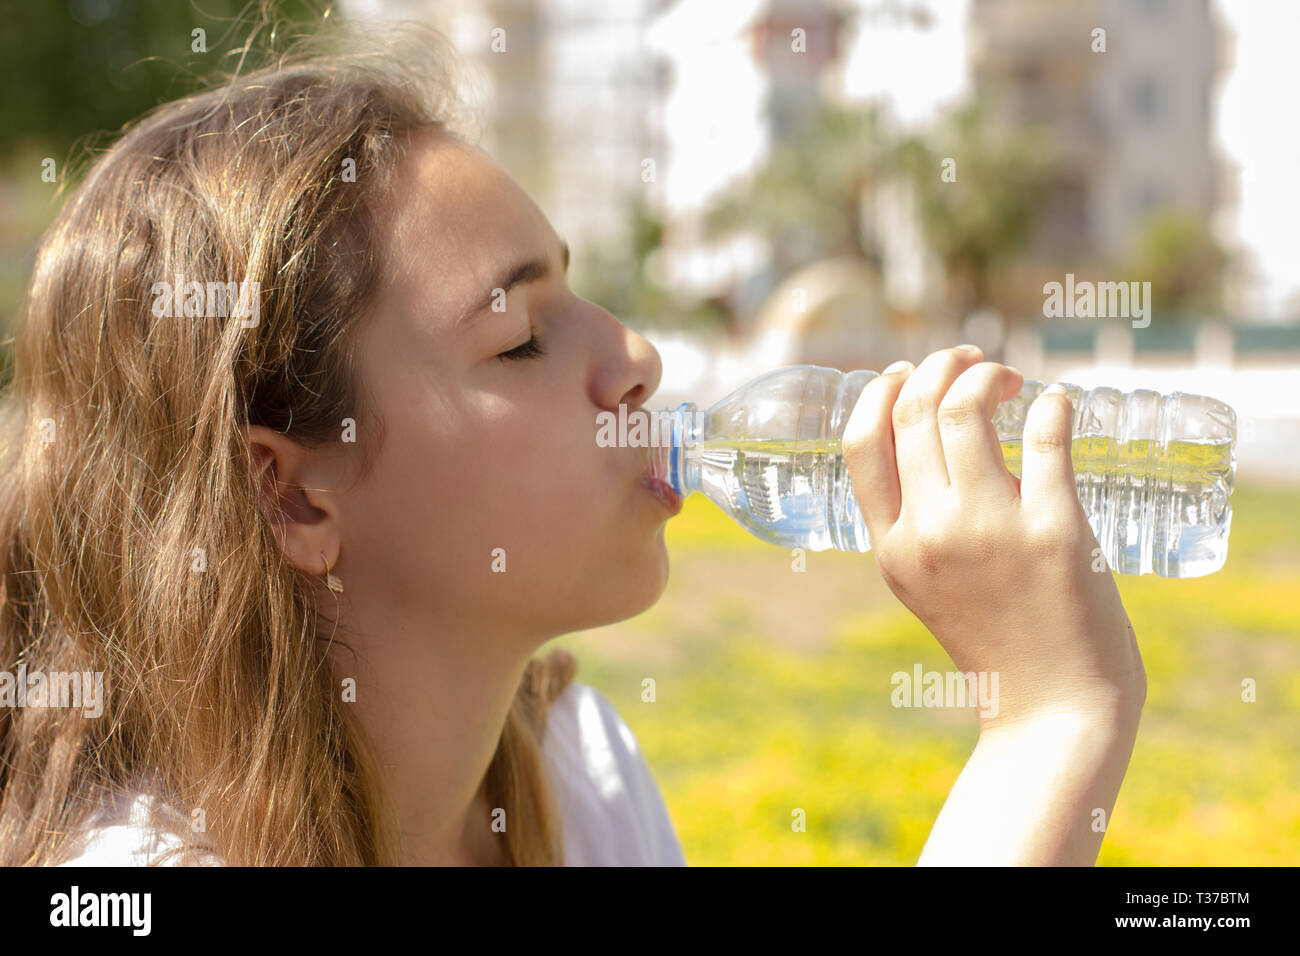 Beautiful teen girl drinks clean water from a plastic bottle on hot summer day - Stock Image